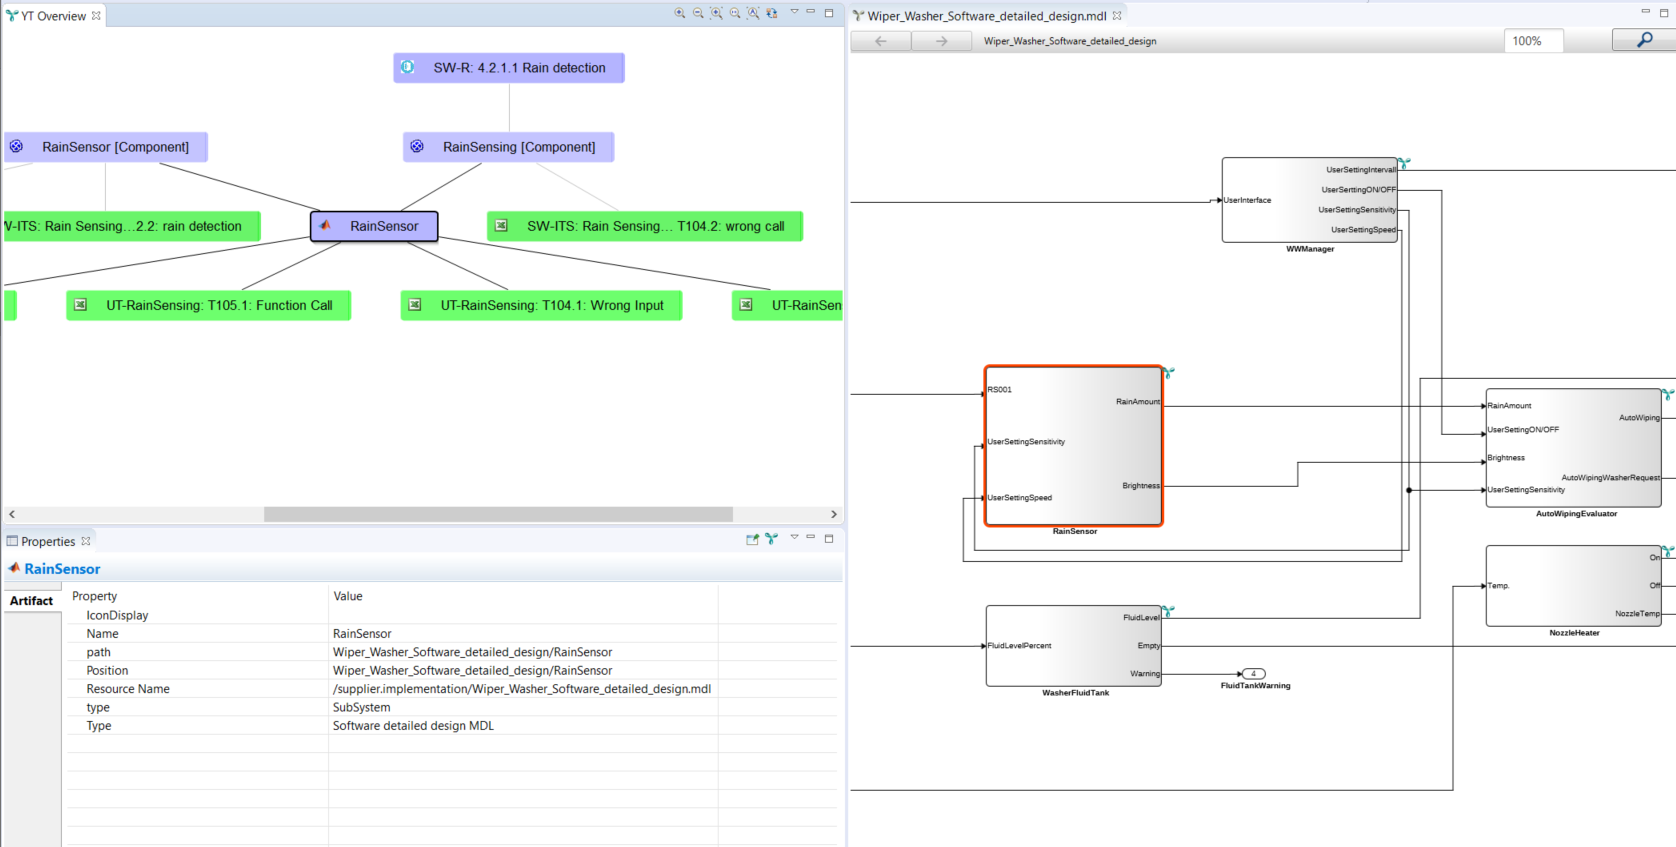 Visualization of a Simulink model with traces in YAKINDU Traceability